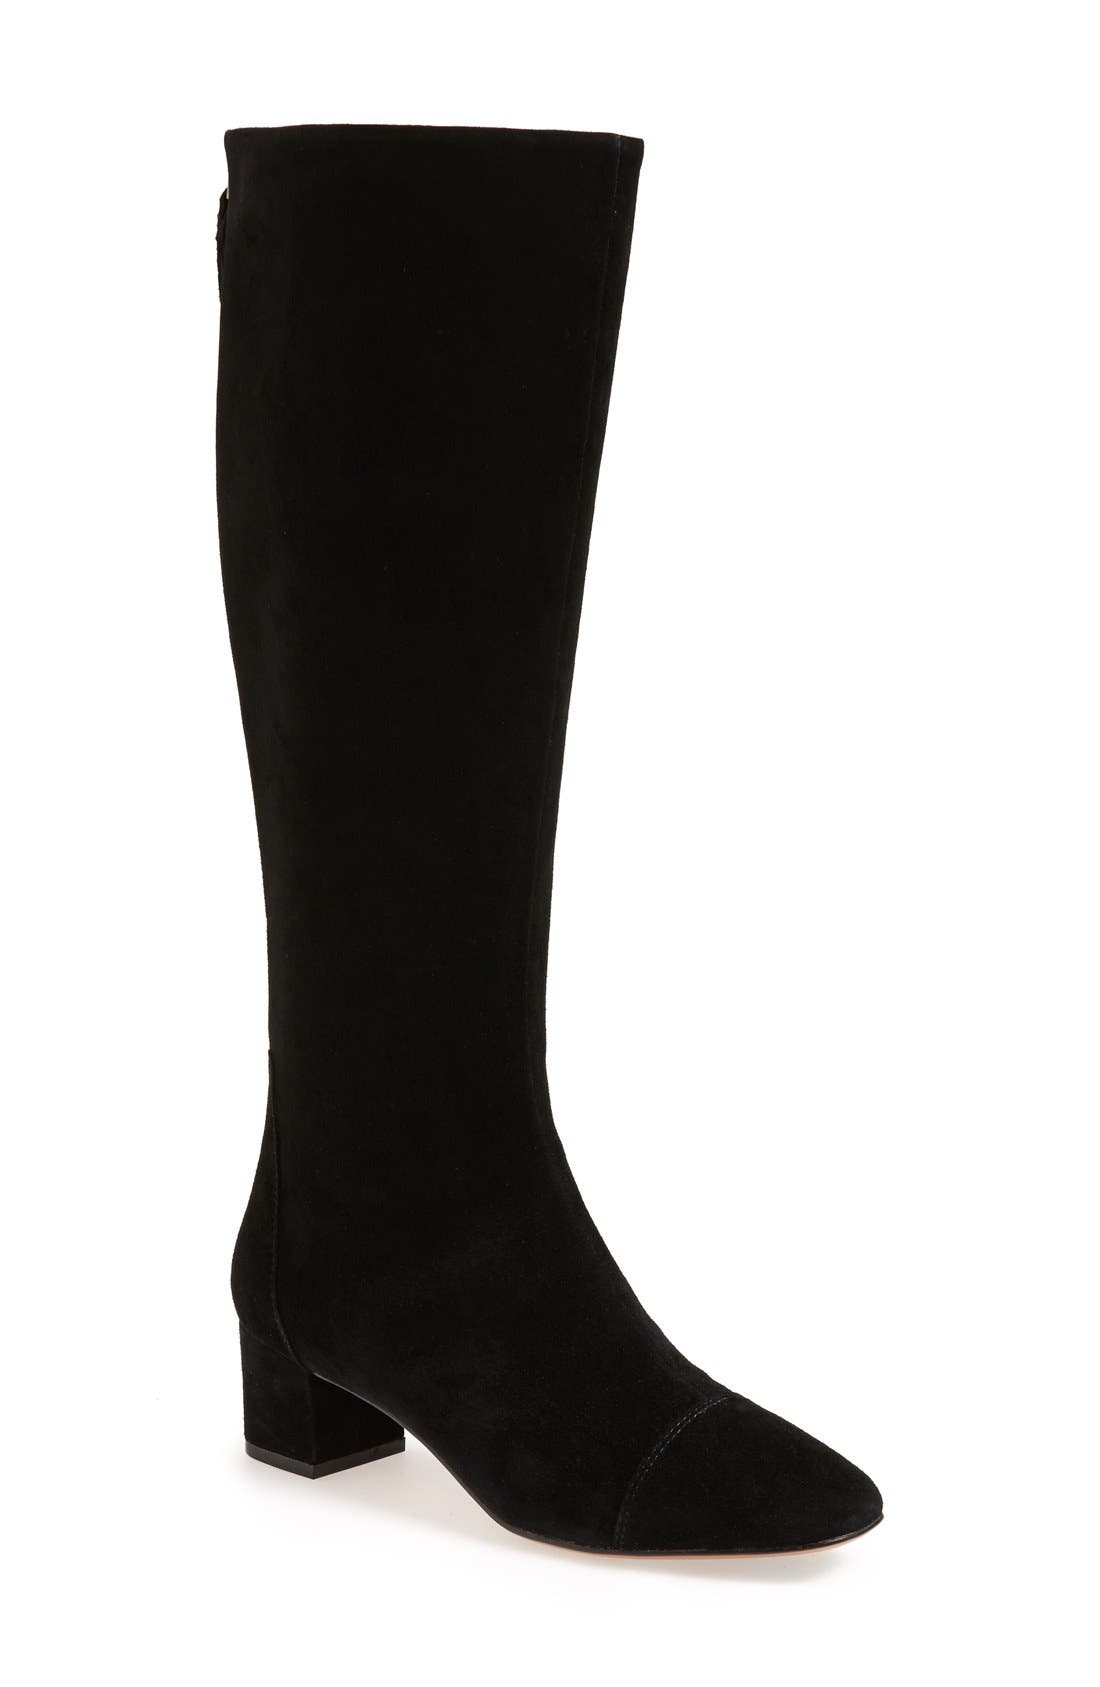 Alternate Image 1 Selected - Nine West 'Anatola' Tall Boot (Women)